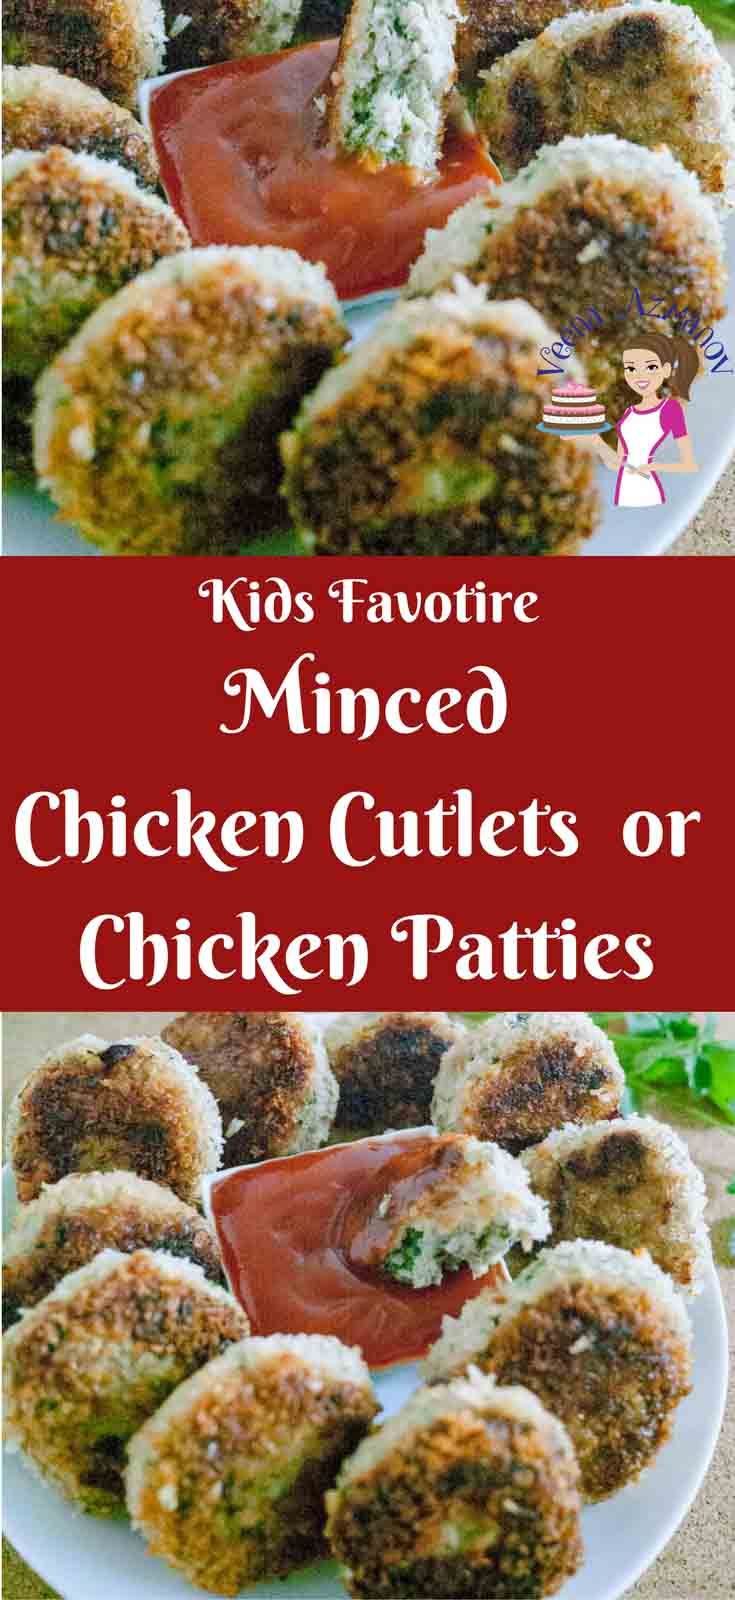 A perfect snack for kids or a side dish on the table. These minced chicken cutlets are simple, easy and effortless. Nothing beats adding all ingredient into a blender, rolling into a ball and cooking them right? Great to freeze for kids snack or lunch boxes too.